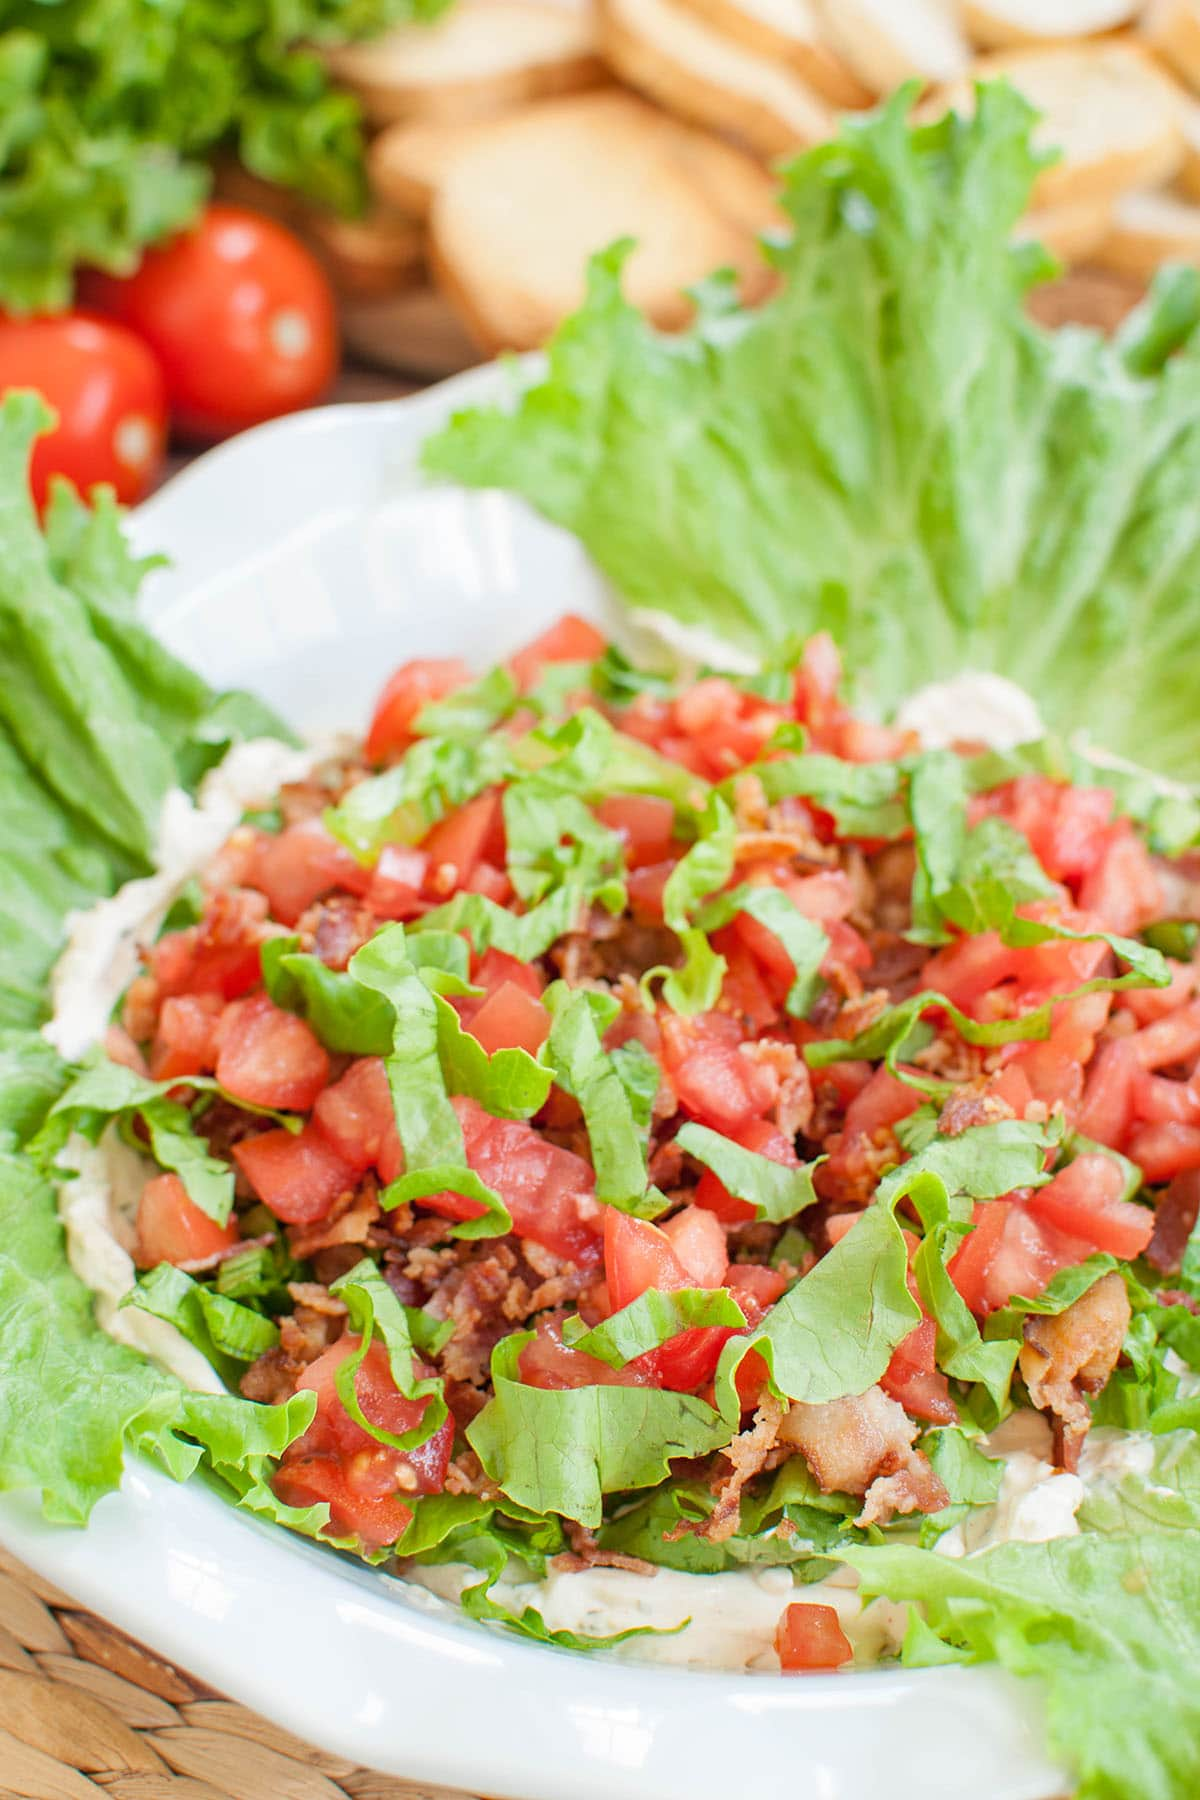 blt dip in a white dish with lettuce leaves